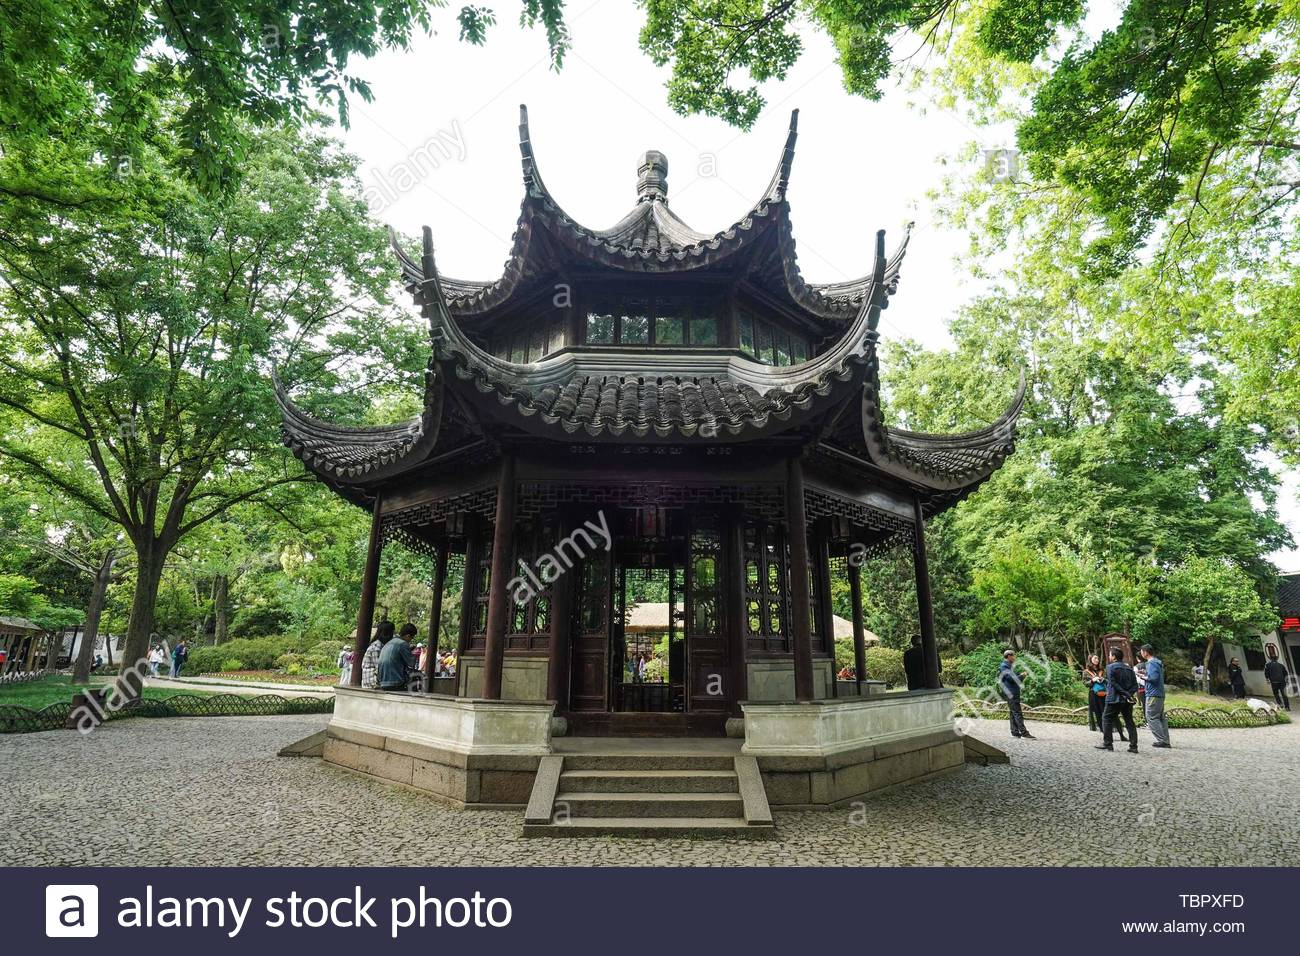 nanjing 6th may 2019 photo taken on may 6 2019 shows tianquan pavilion at humble administrators garden in suzhou east chinas jiangsu province in 1997 the classical gardens of suzhou were put on the unescos heritage list in 2018 the total number of gardens included in the suzhou garden list reached 108 and suzhou was officially transformed from the city of gardens into the city of 100 gardens credit li boxinhuaalamy live news TBPXFD